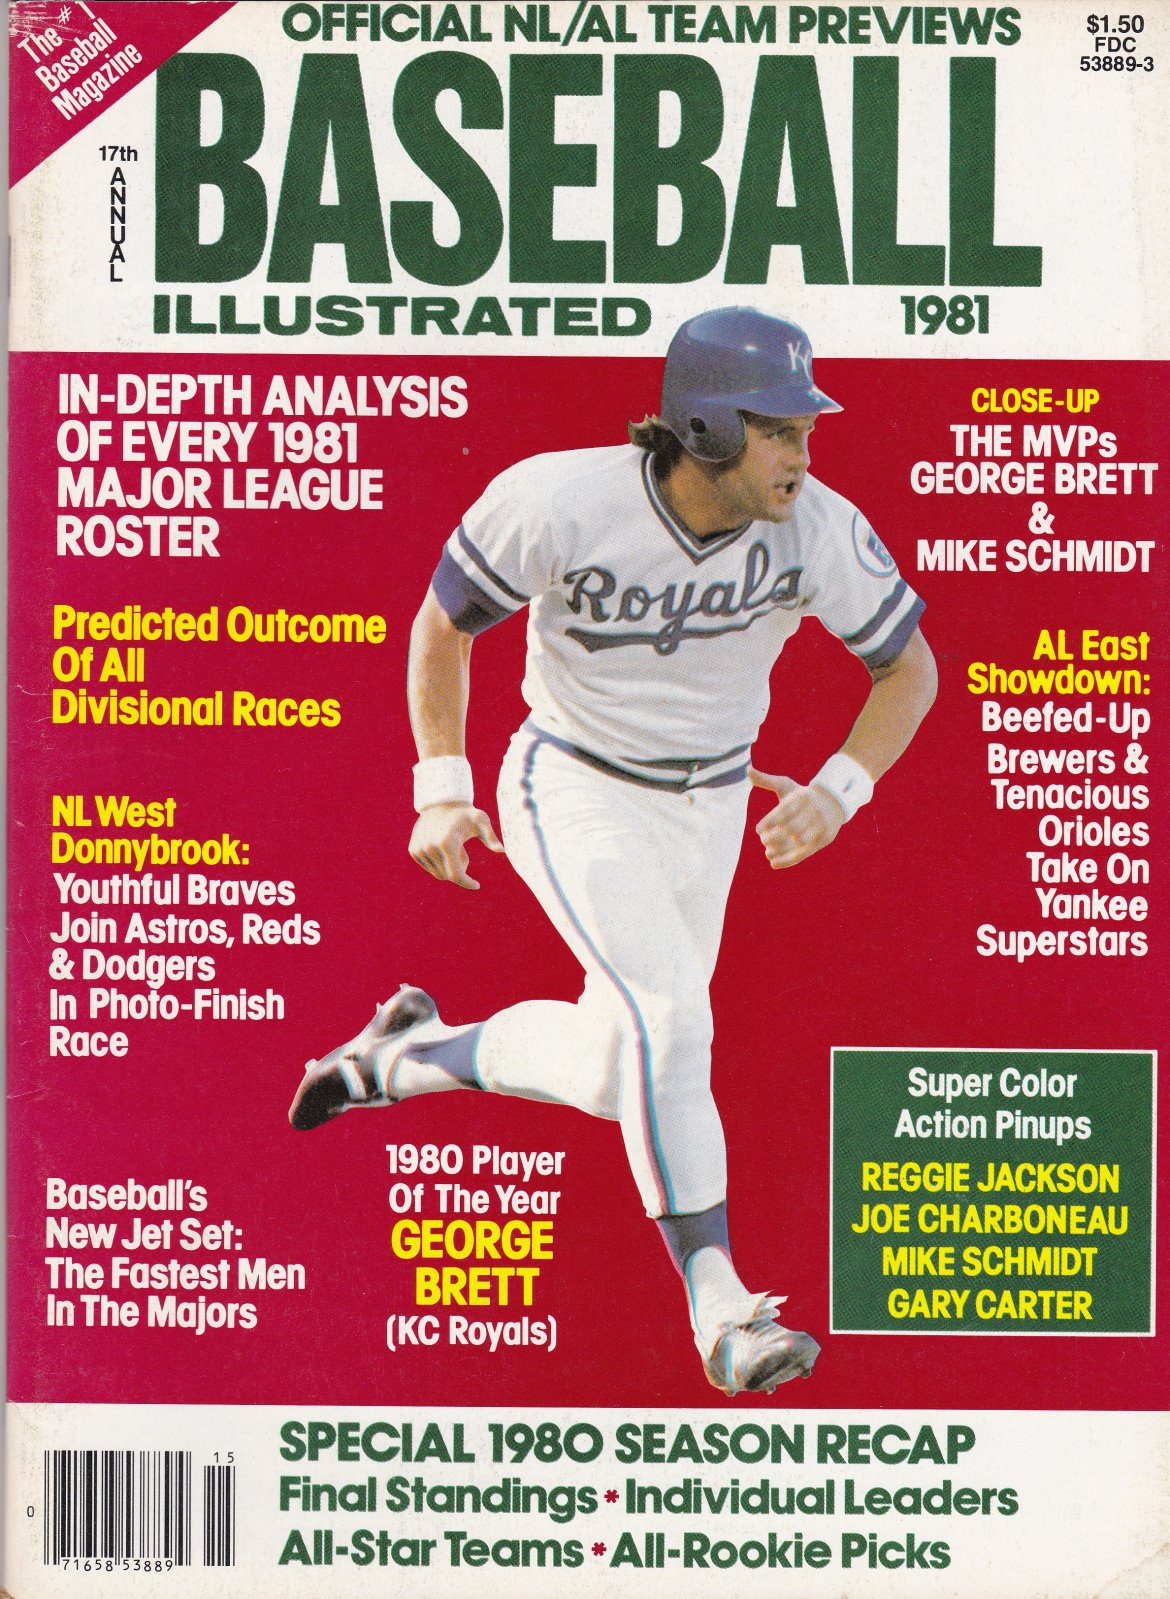 1981 17th Annual Baseball Illustrated